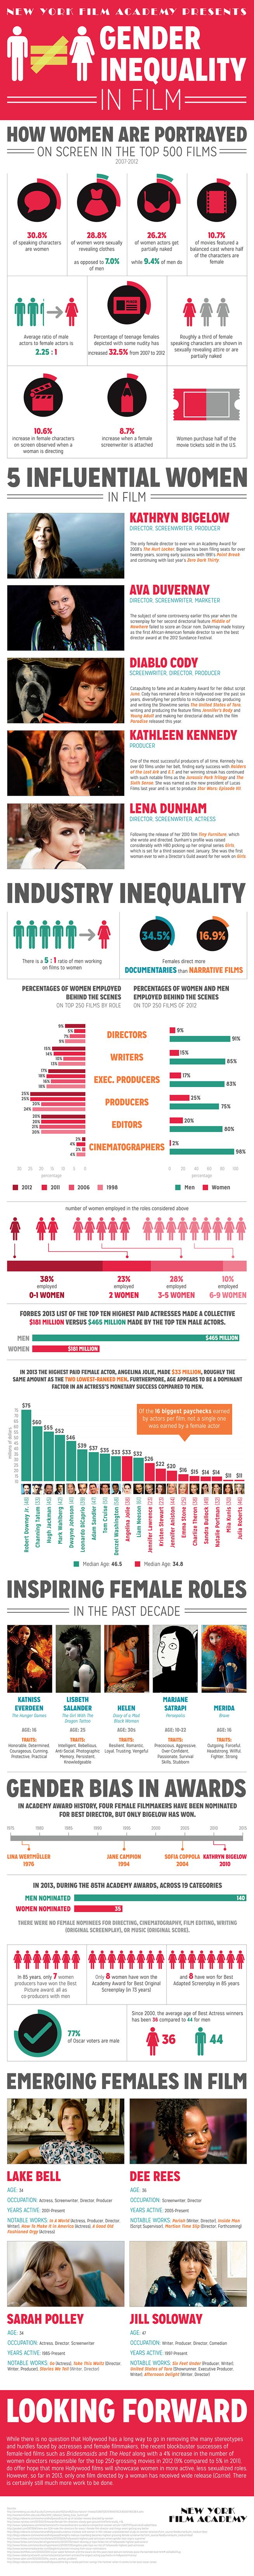 Gender Inequality in Film Infographic, created for New York Film Academy. Released on the Monday following the record-breaking box office debut of The Hunger Games: Catching Fire to serve as a reminder that Hollywood still has a long way to come in terms of gender parity. This infographic was wildly successful, earning over 35K backlinks and earning write-ups from such sites as Time Magazine, The Guardian, Jezebel, Salon, Complex, Elle, Buzzfeed, Indie Wire, and many more.